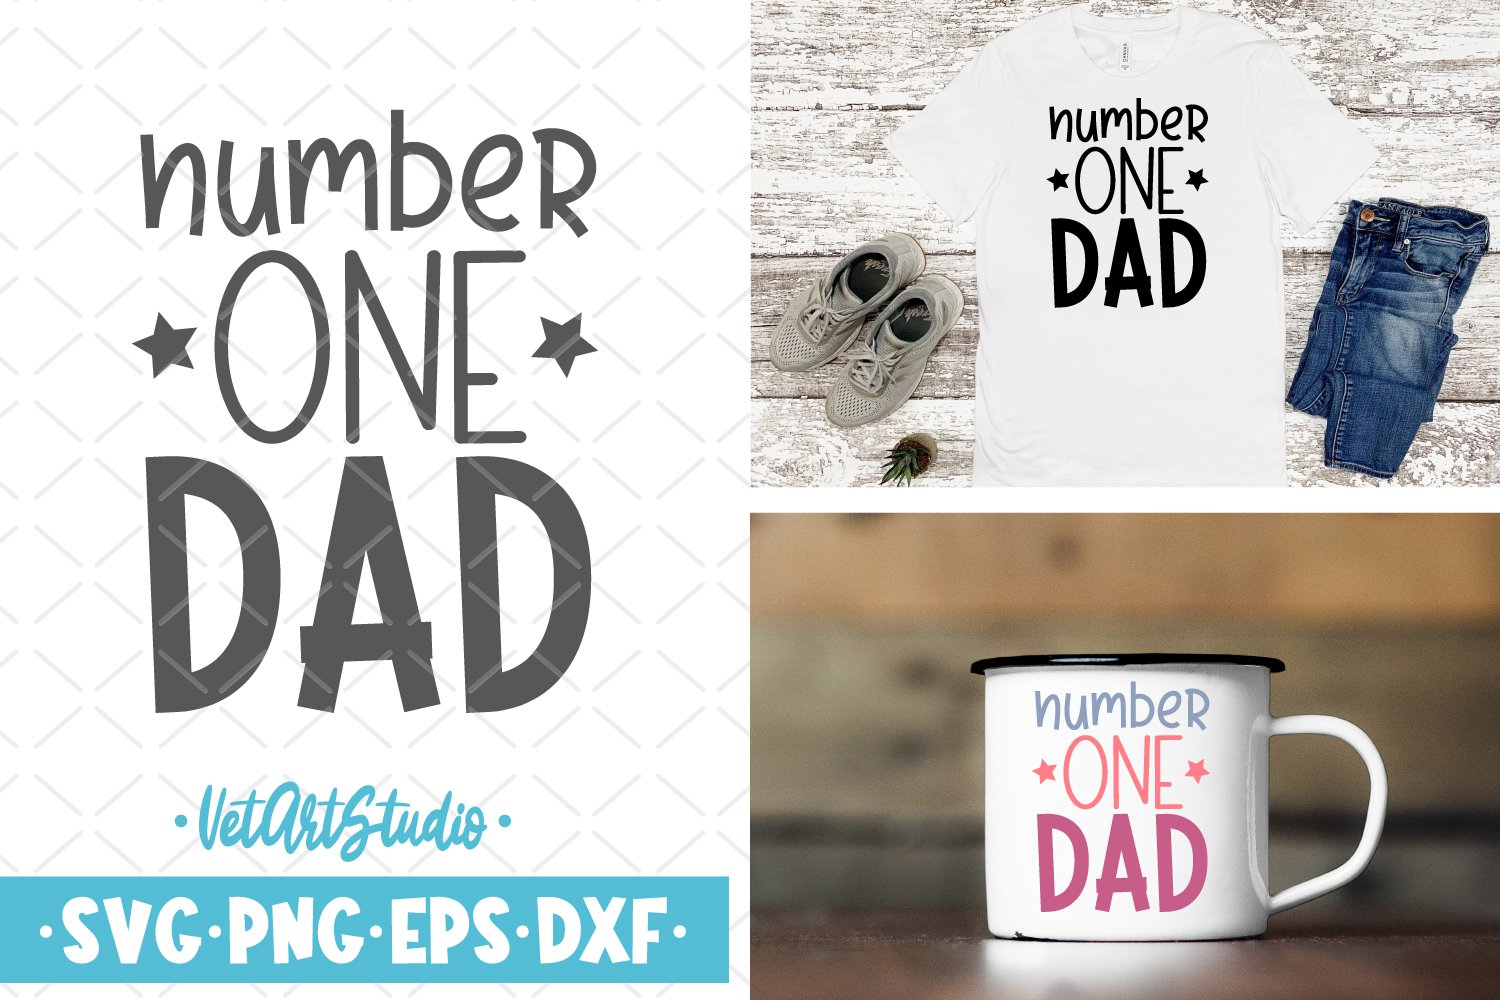 Number one dad svg, Father's day, Dad print example image 1